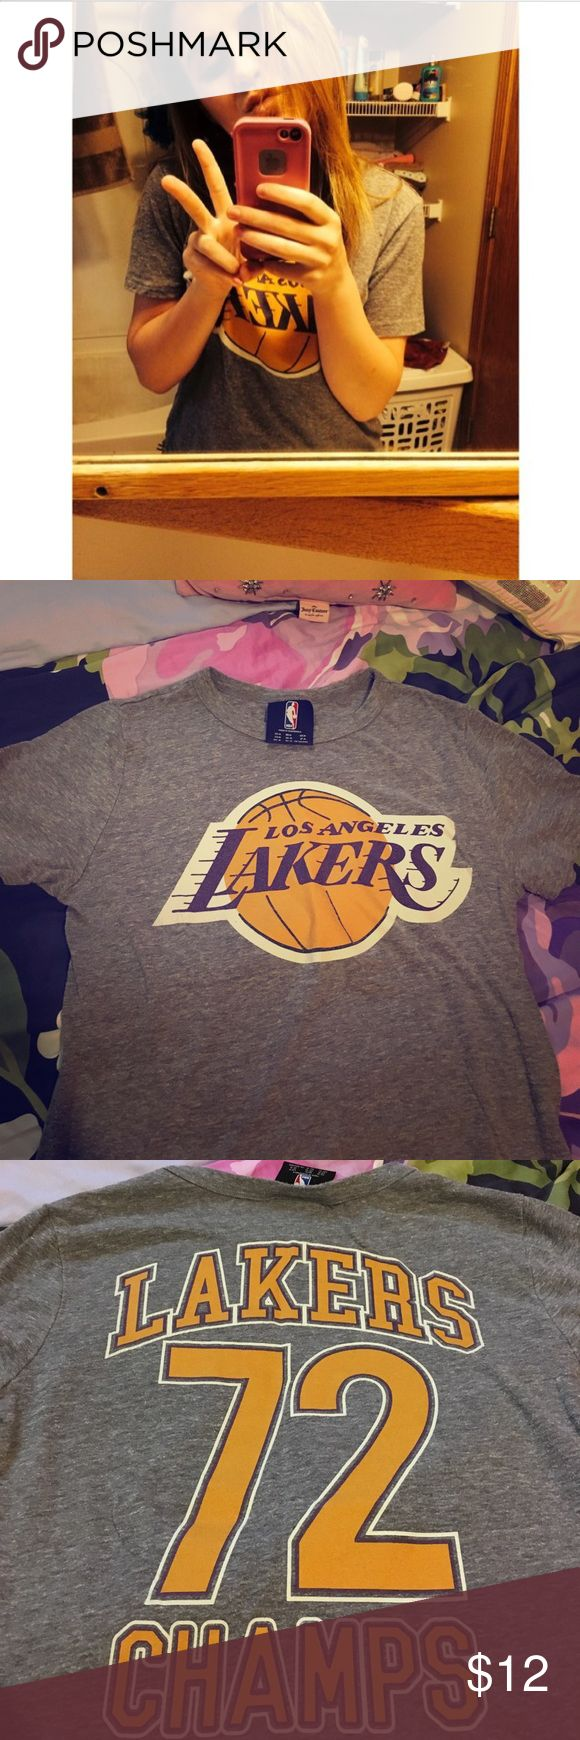 Forever 21 Lakers T-Shirt Size medium laker t shirt. Has front and back designs. In good condition- no rips or discoloration. Forever 21 Tops Tees - Short Sleeve